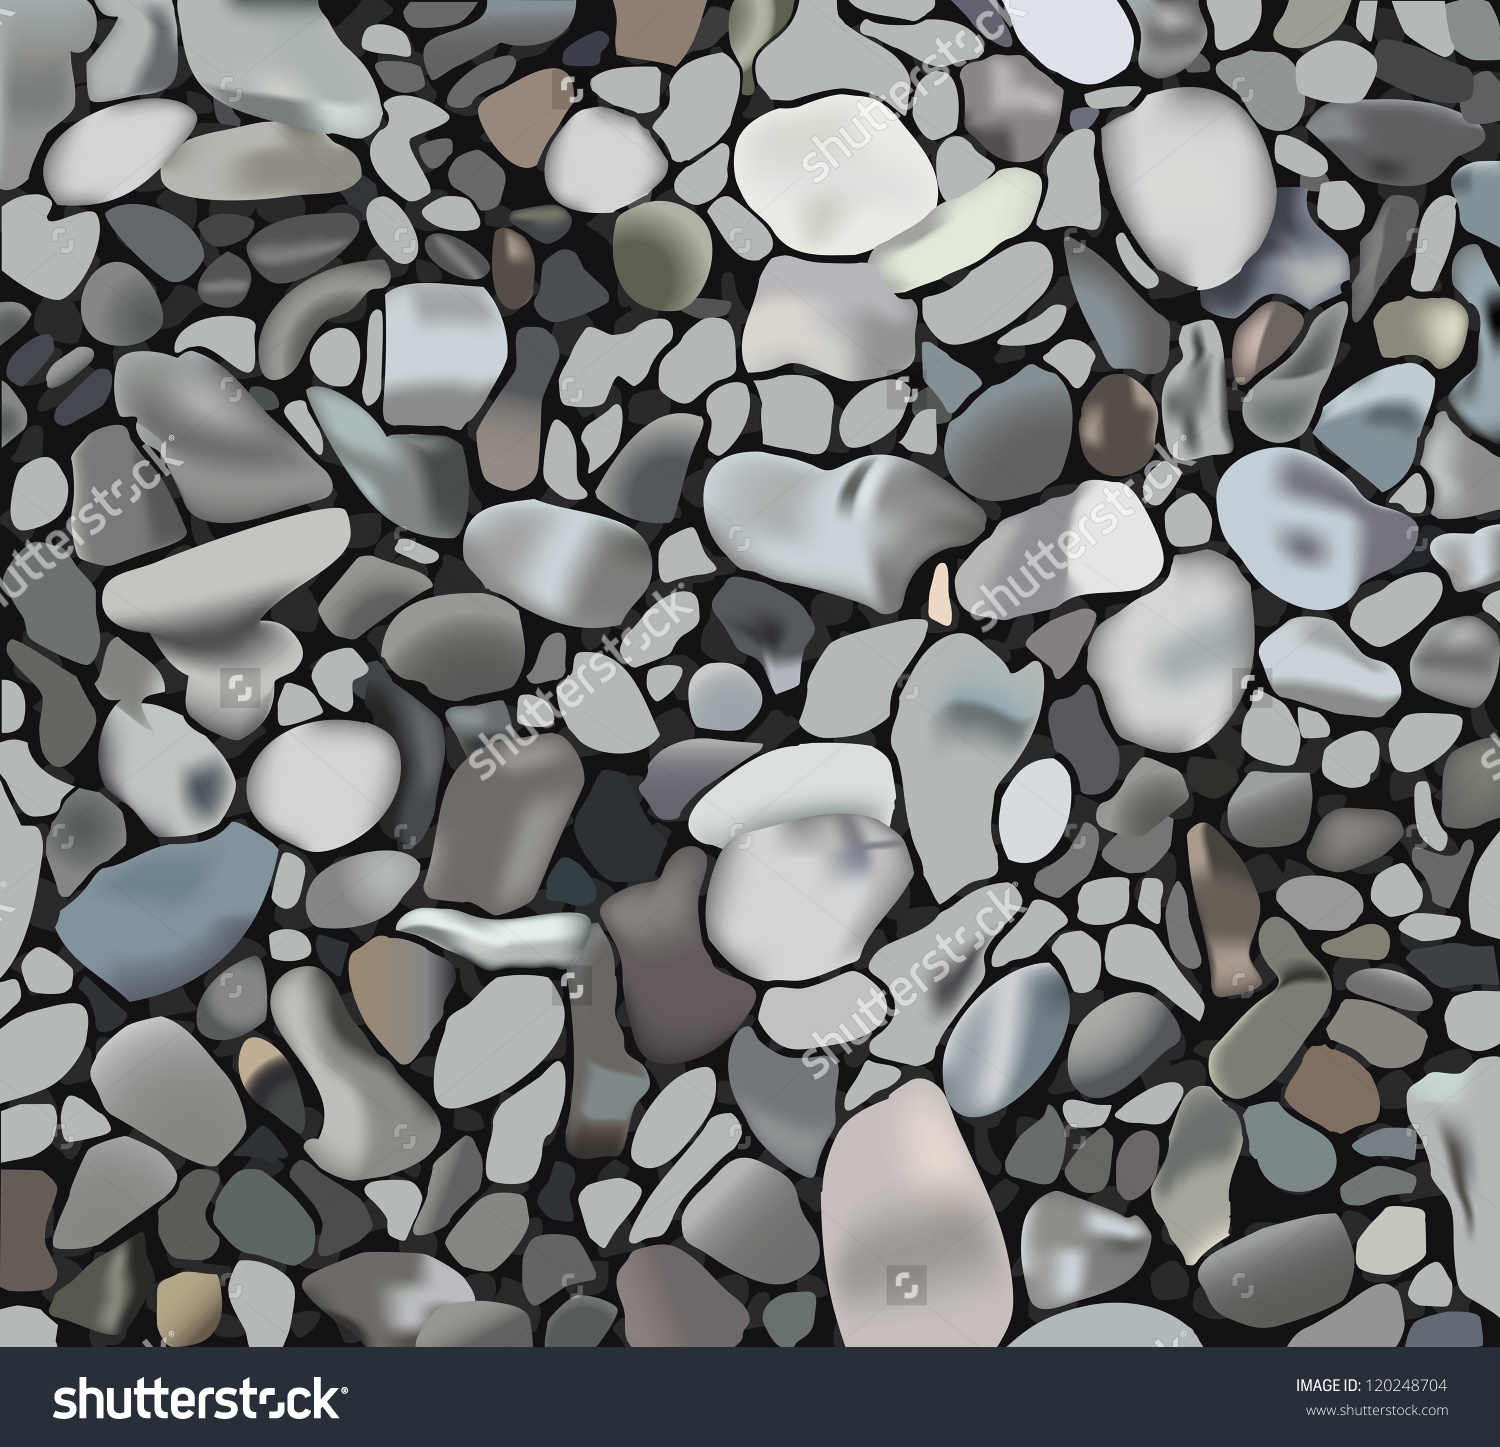 River rocks clipart #11